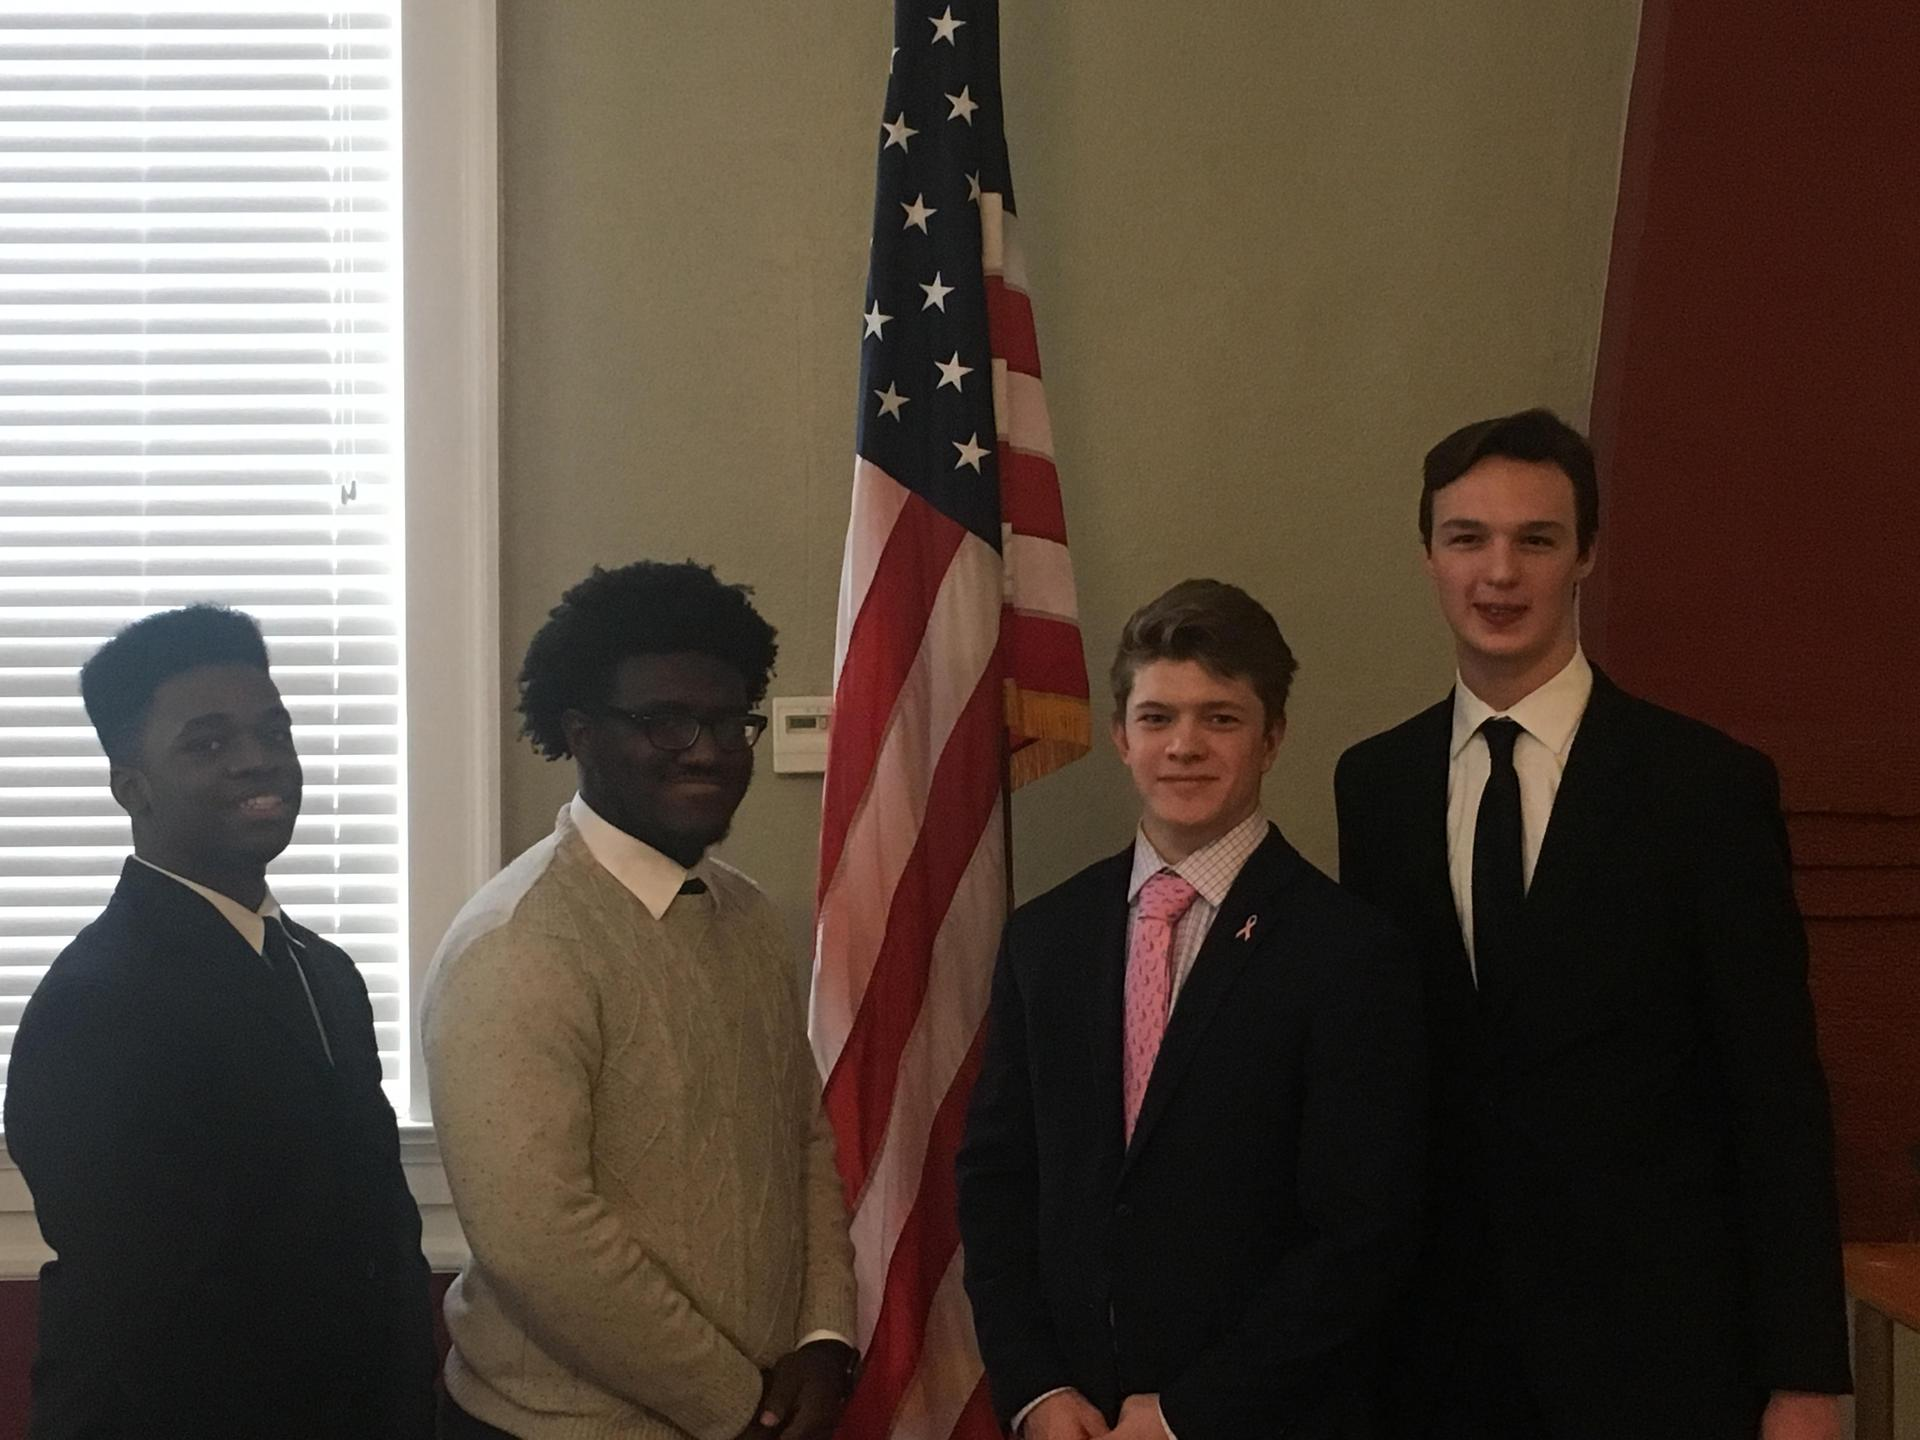 The 2018 American legion Oratorical Contest Winners.  Region Winner - Joshwell Thompson (L)